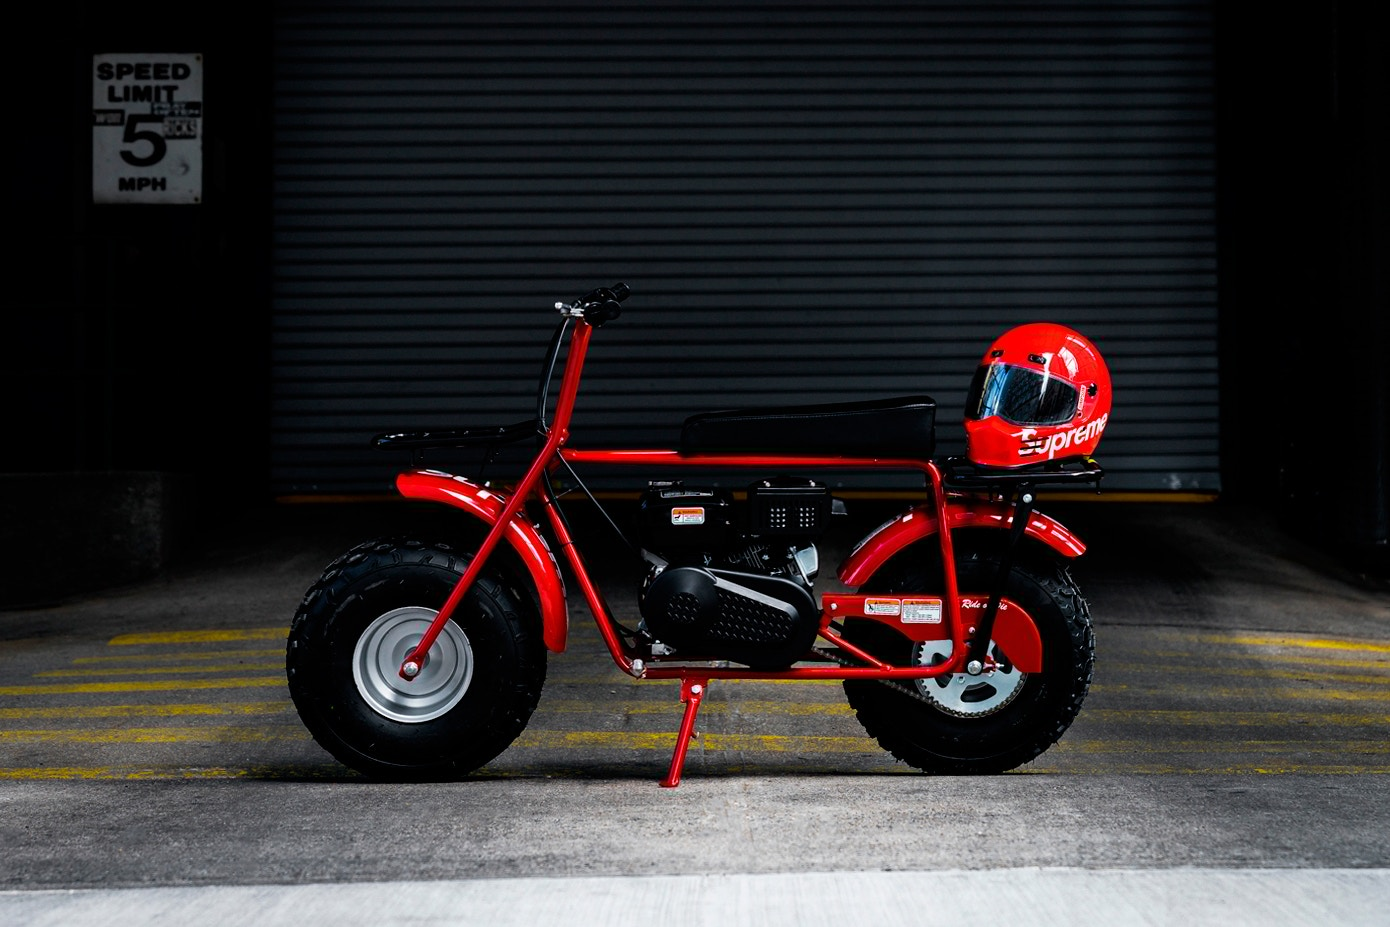 supreme coleman ct200u minibike 01 - Surreal, Rider e High Company são destaque em editorial da Red Light Store